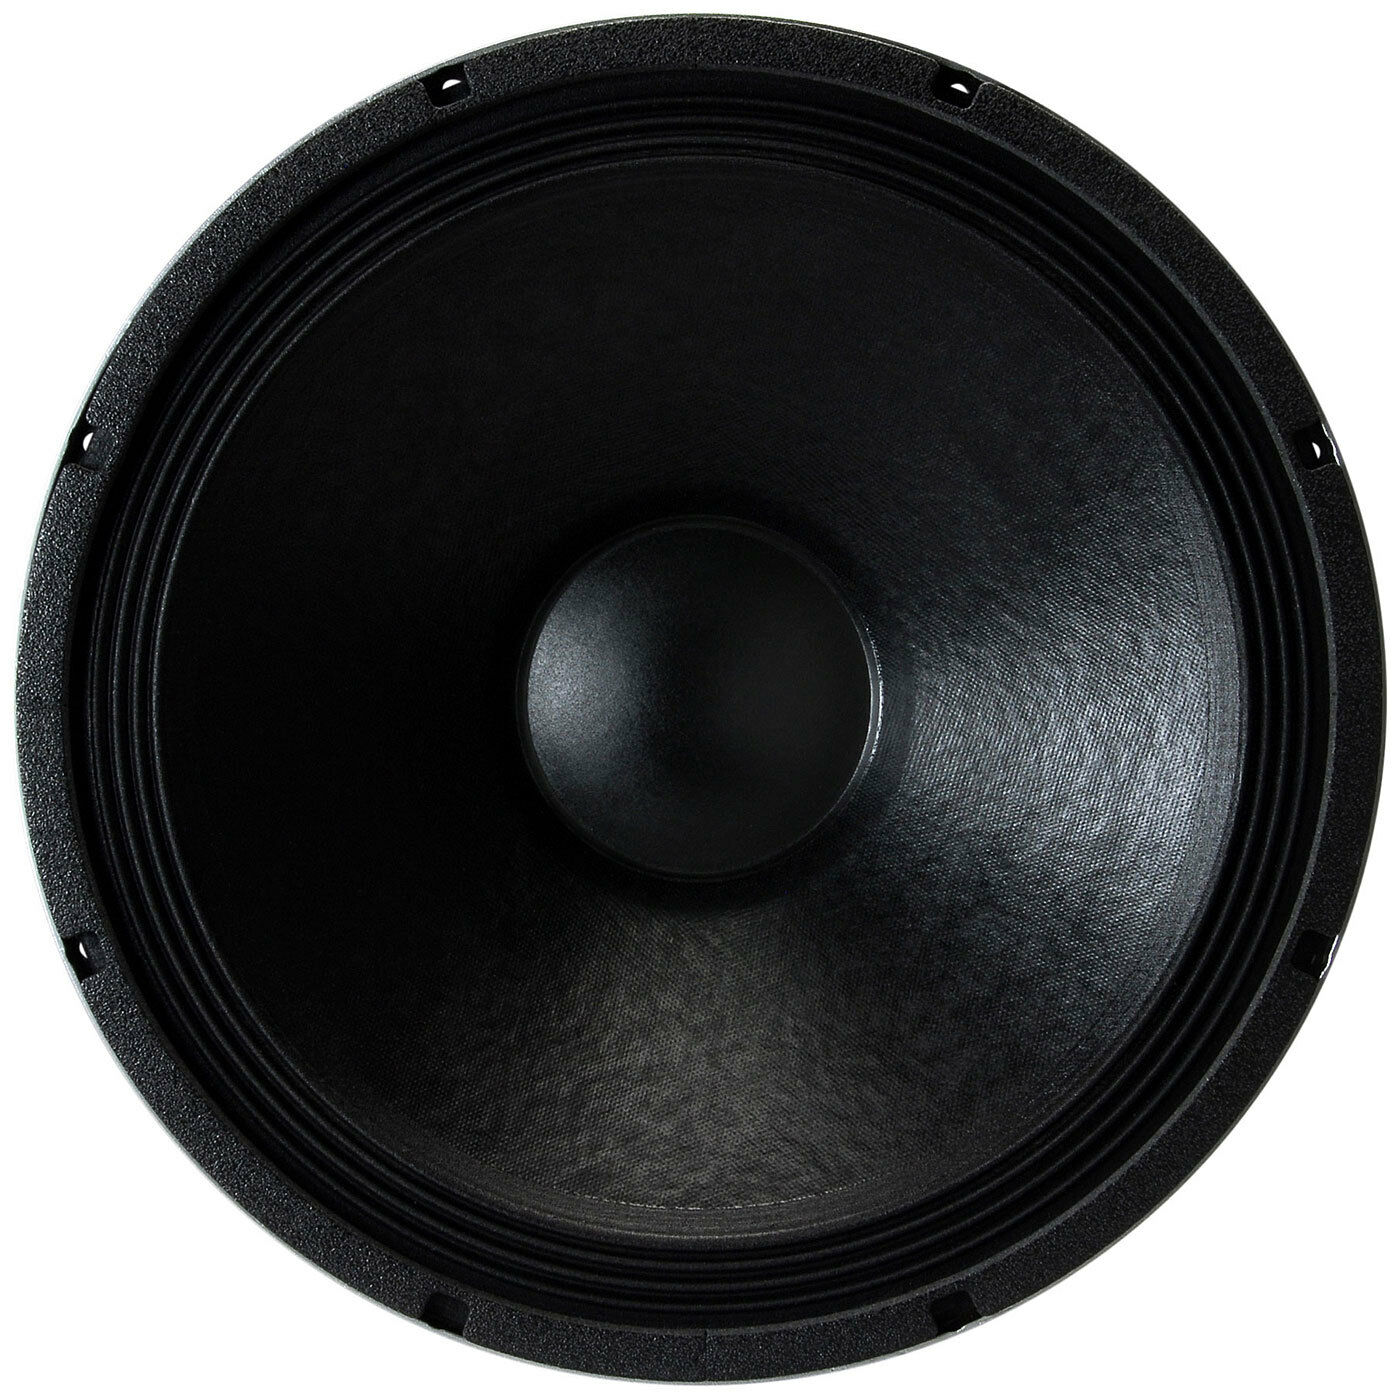 "Eminence IMPERO 18A 18/"" High Power Sub Woofer 8ohm 2,400W Replacement Speaker"